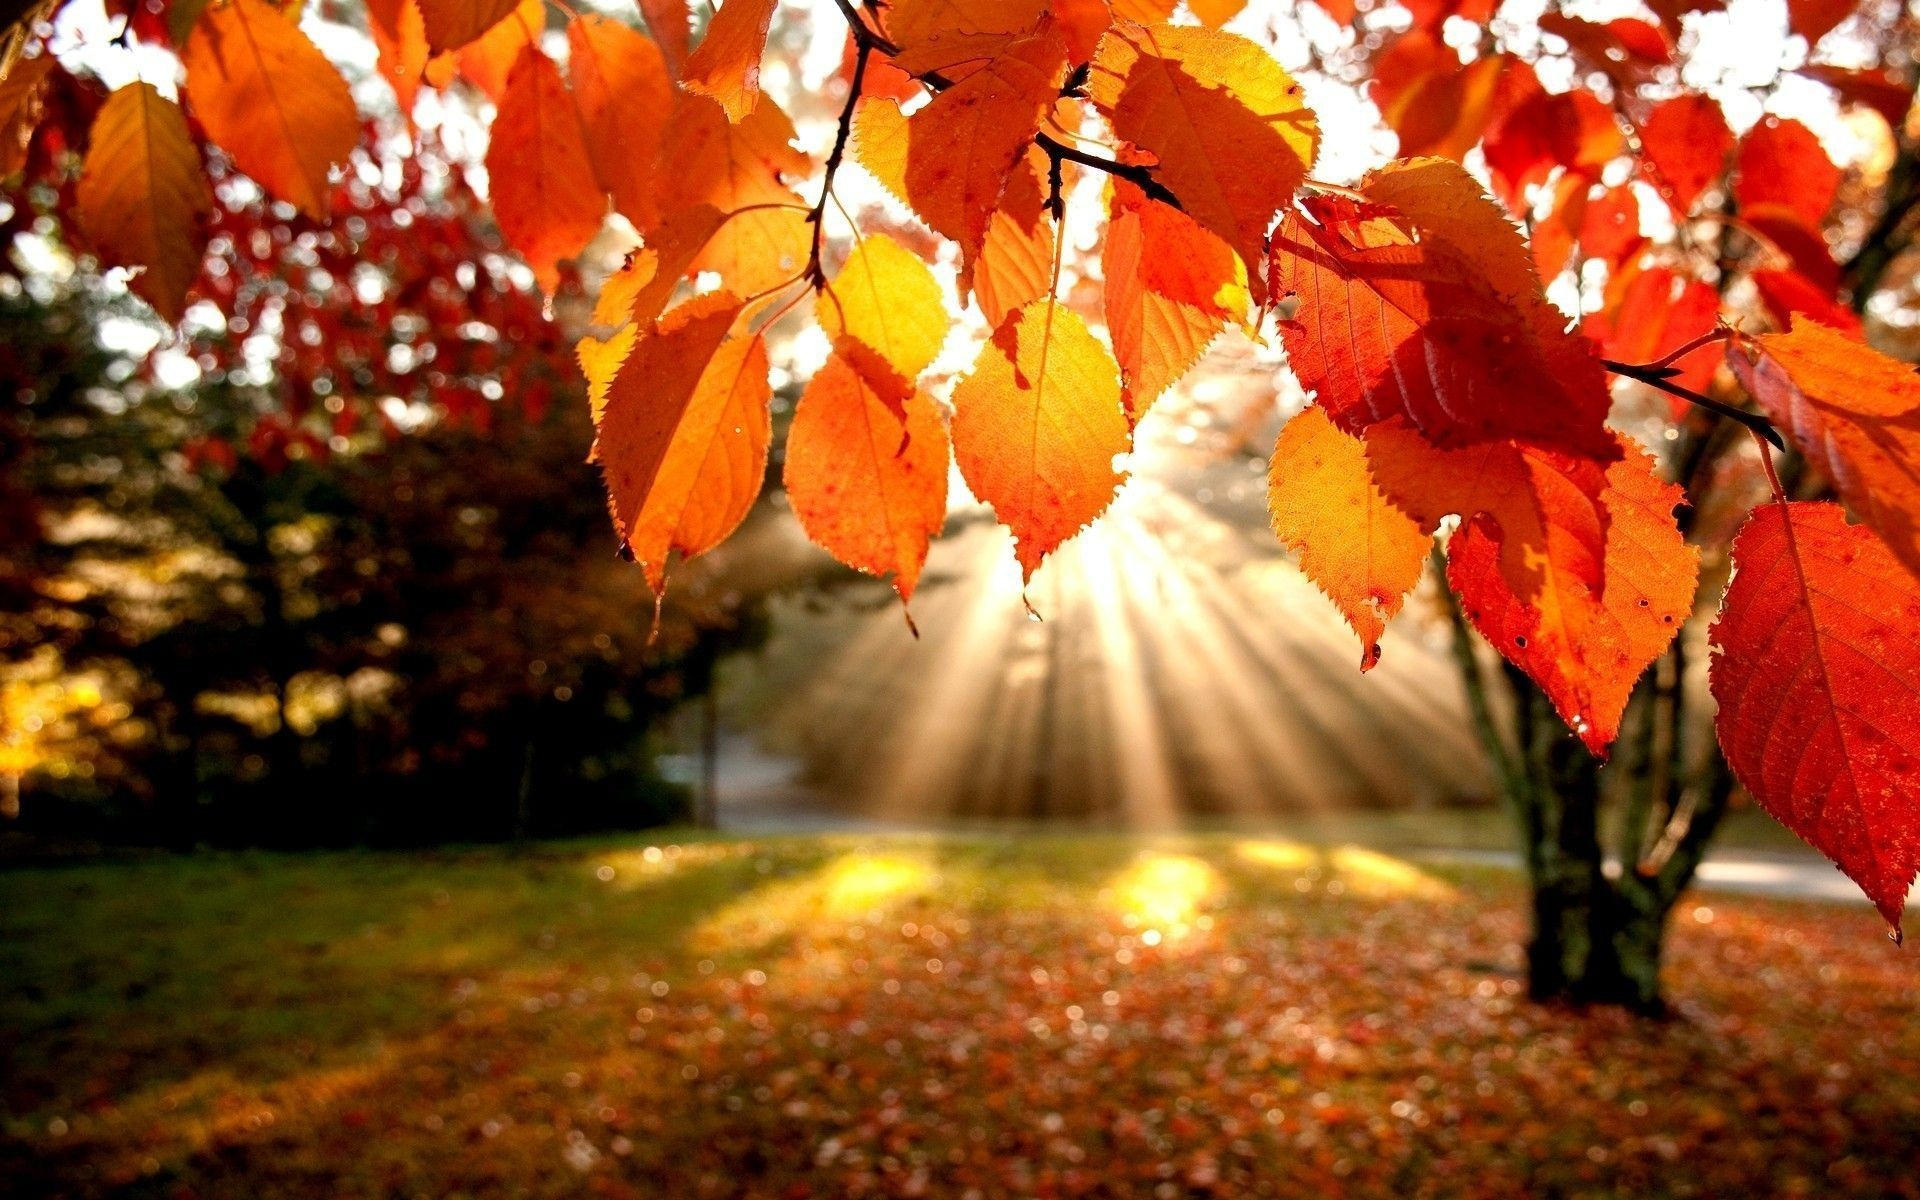 Fall Foliage Wallpapers For Desktop – Wallpaper Cave